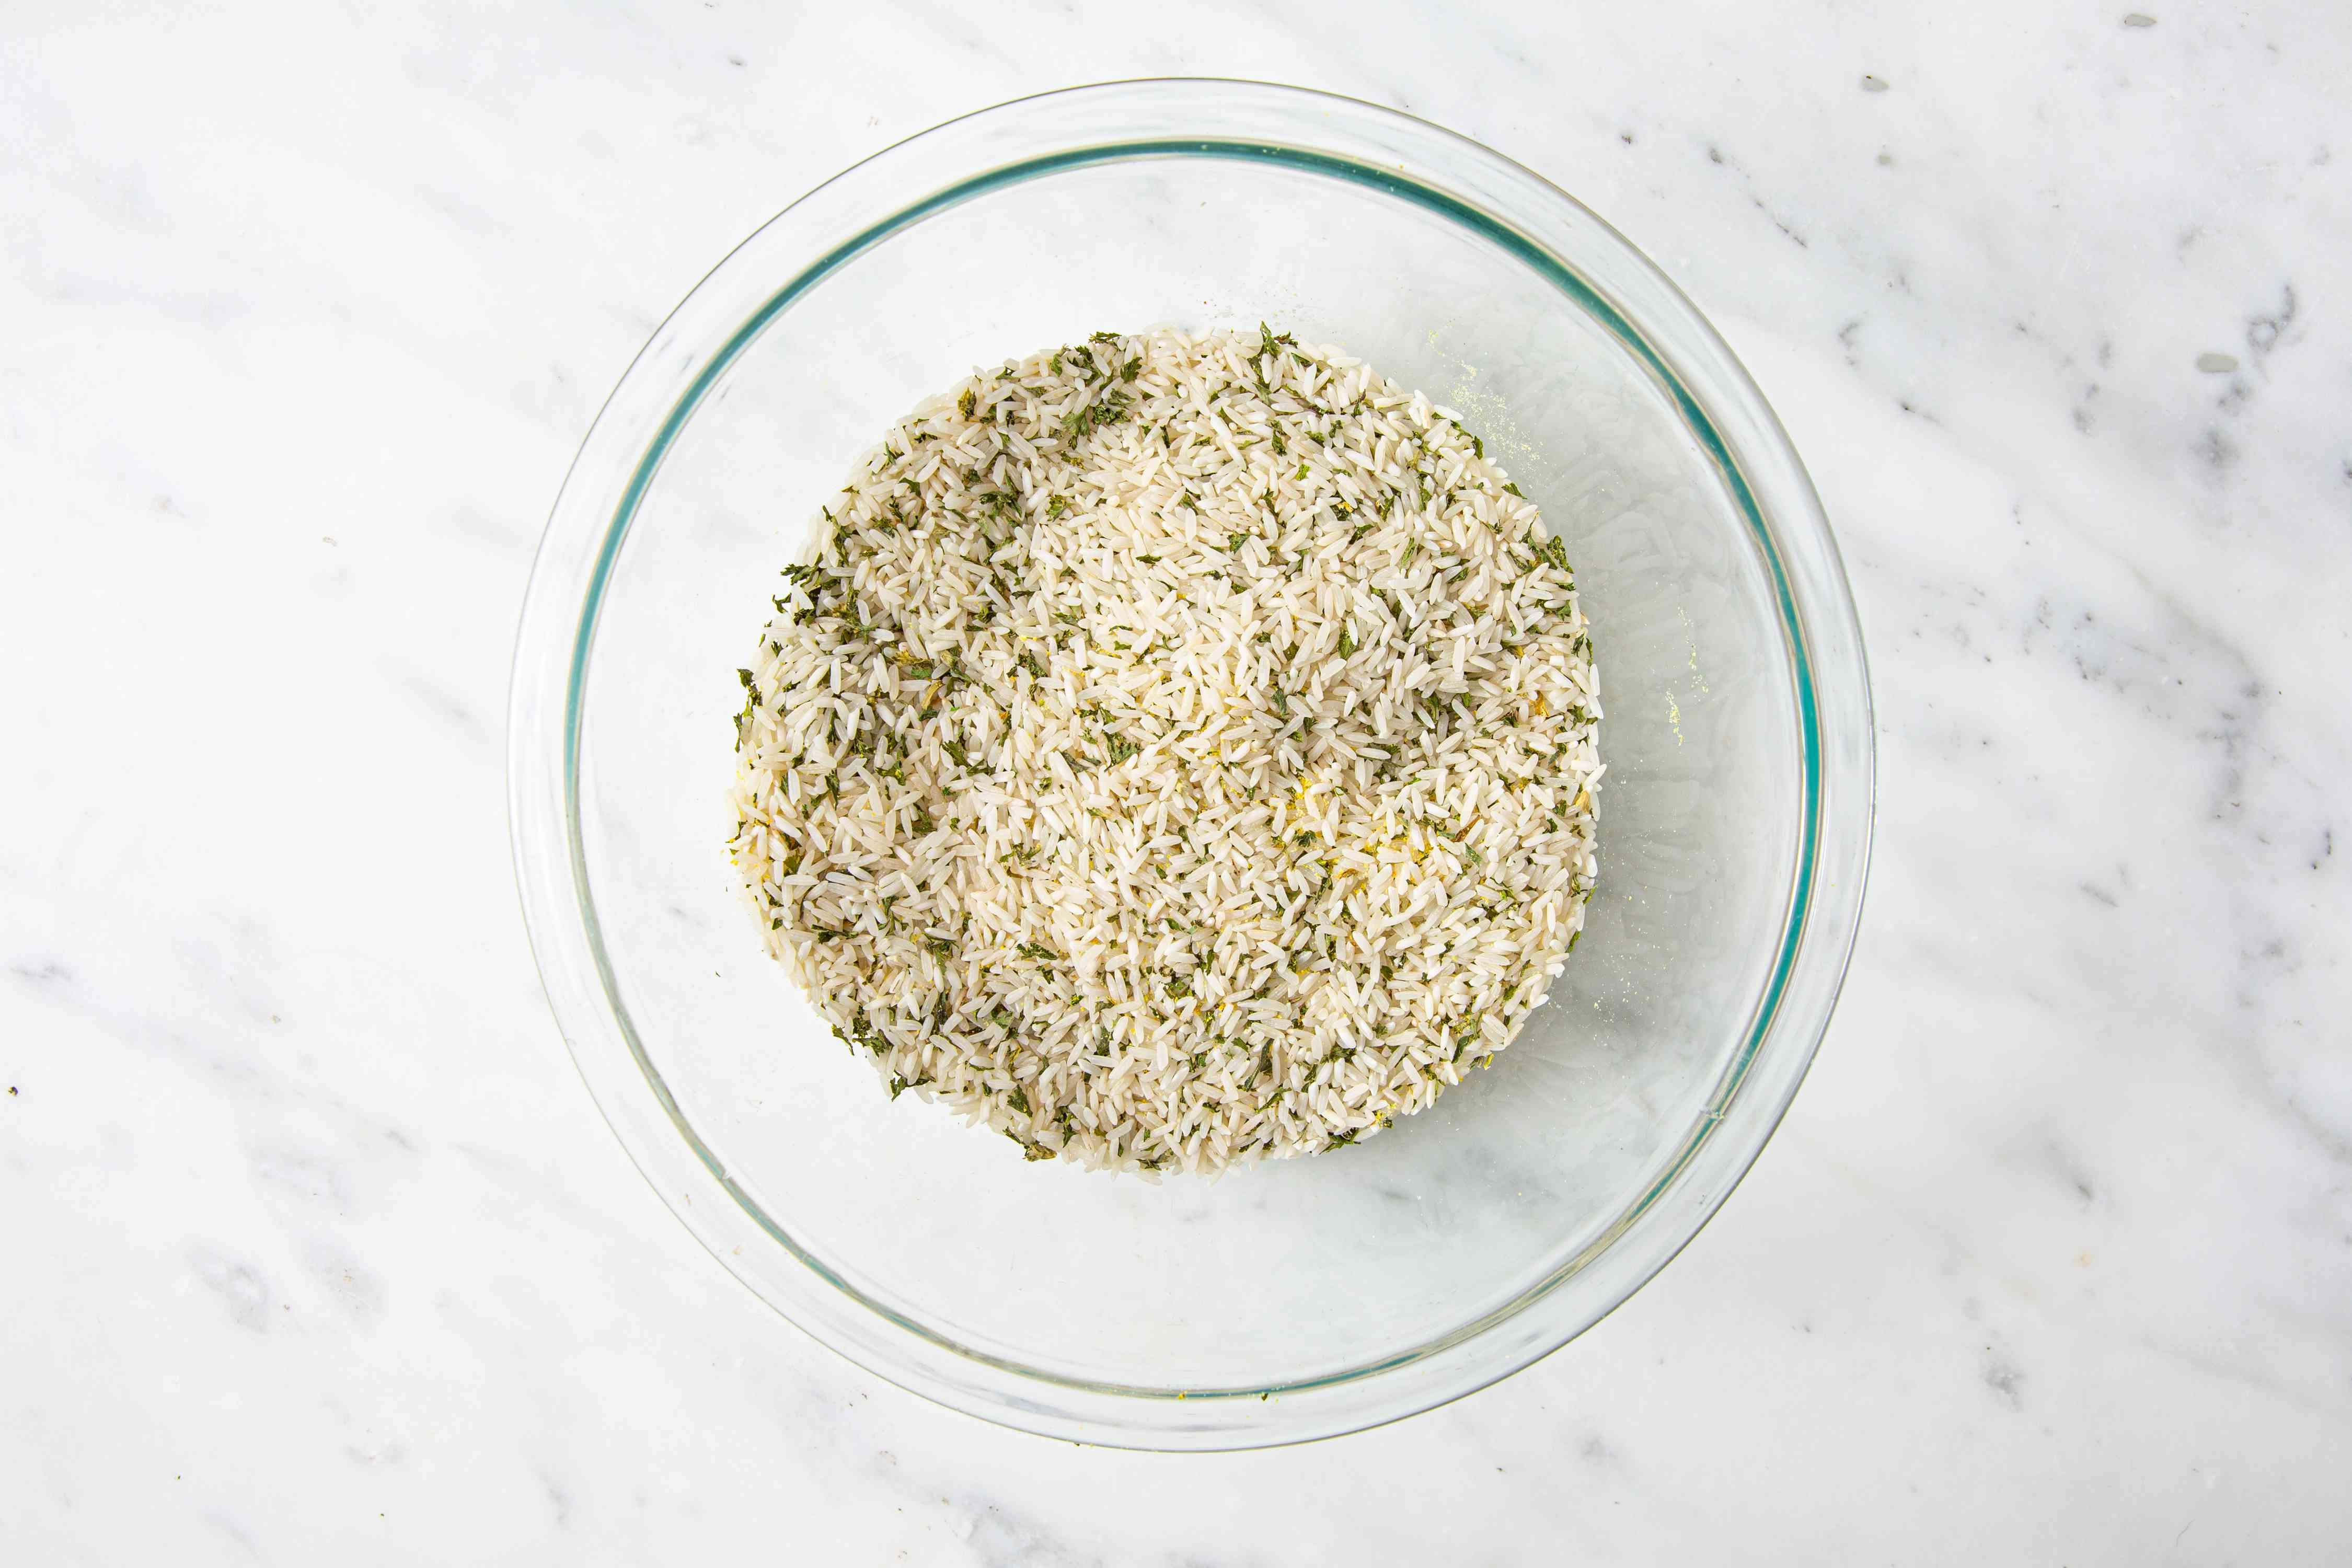 Seasoned Rice Mix ingredients together in a bowl